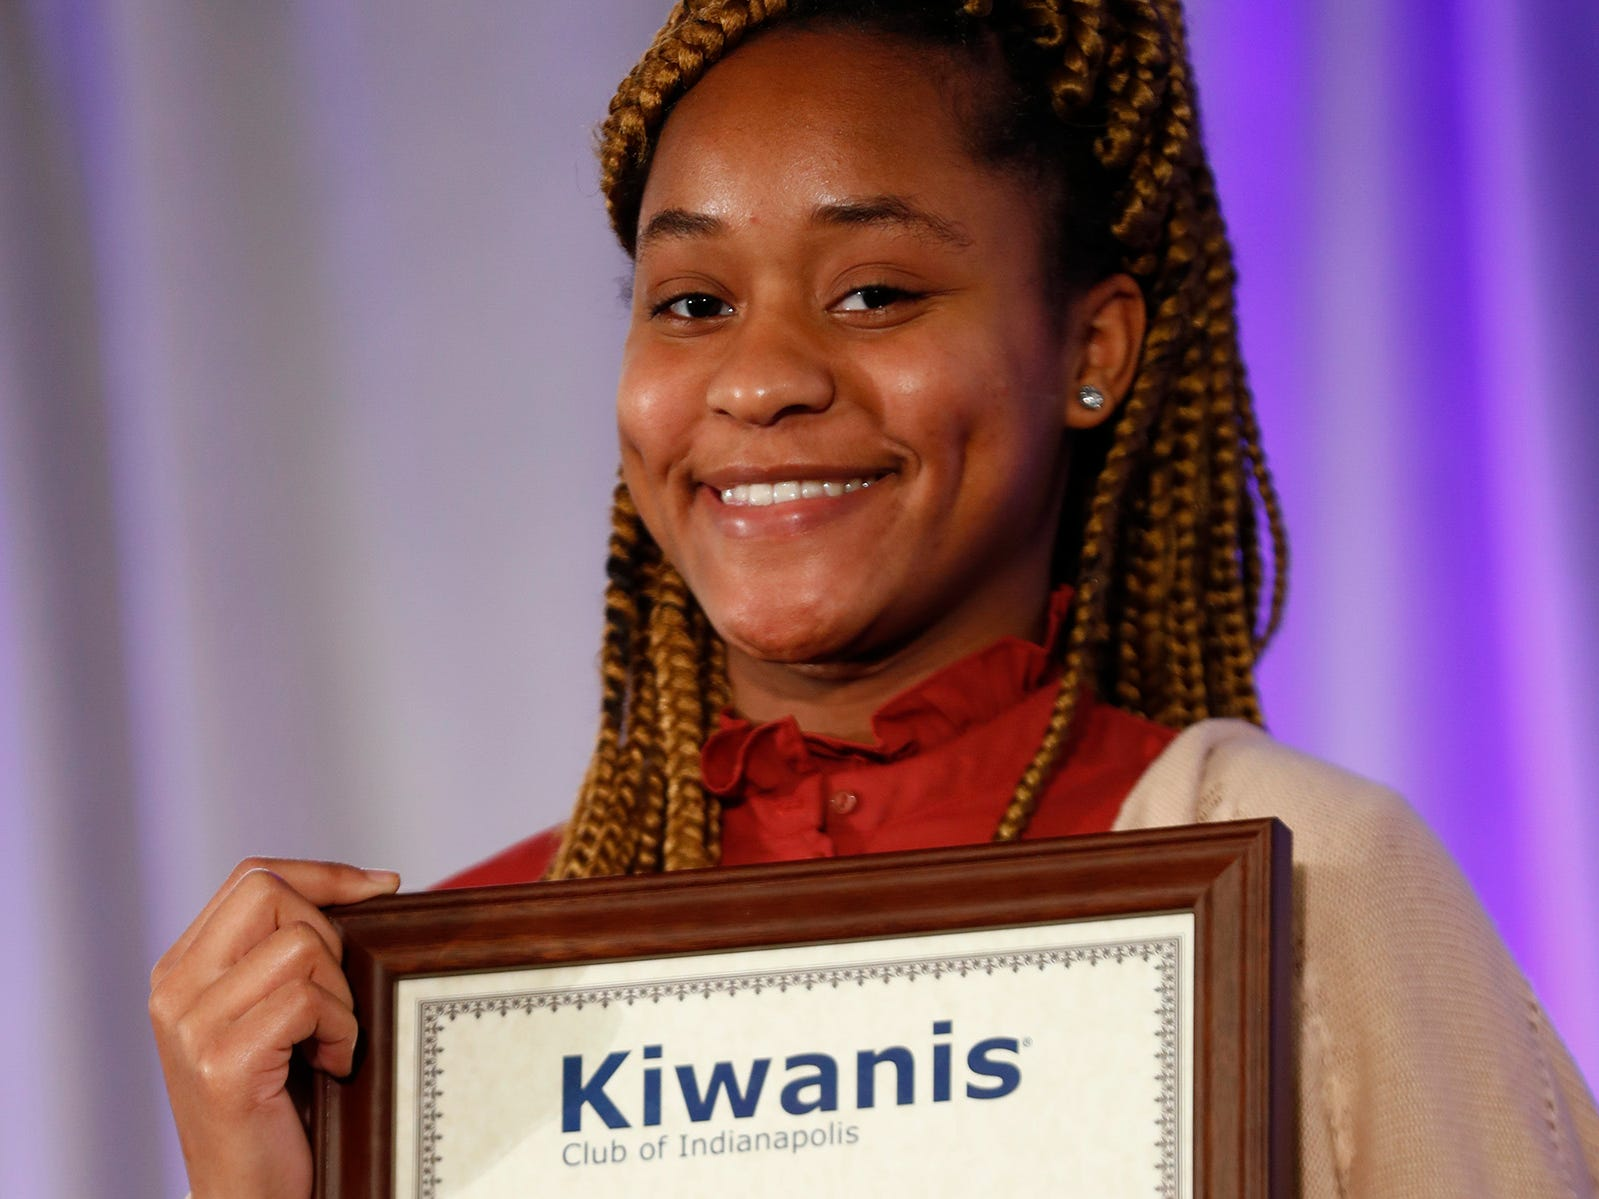 Pike High School student Danielle Jackson smiles after receiving her 2nd Place Scholarship award at the 44th Annual Abe Lincoln Awards Program, Friday, Feb. 8, 2019. The Kiwanis Club of Indianapolis program was held at Ivy Tech Community College.  20 high school student were honored at the annual event which celebrates overcoming adversity in life to succeed. Four of the 20 students received scholarships.